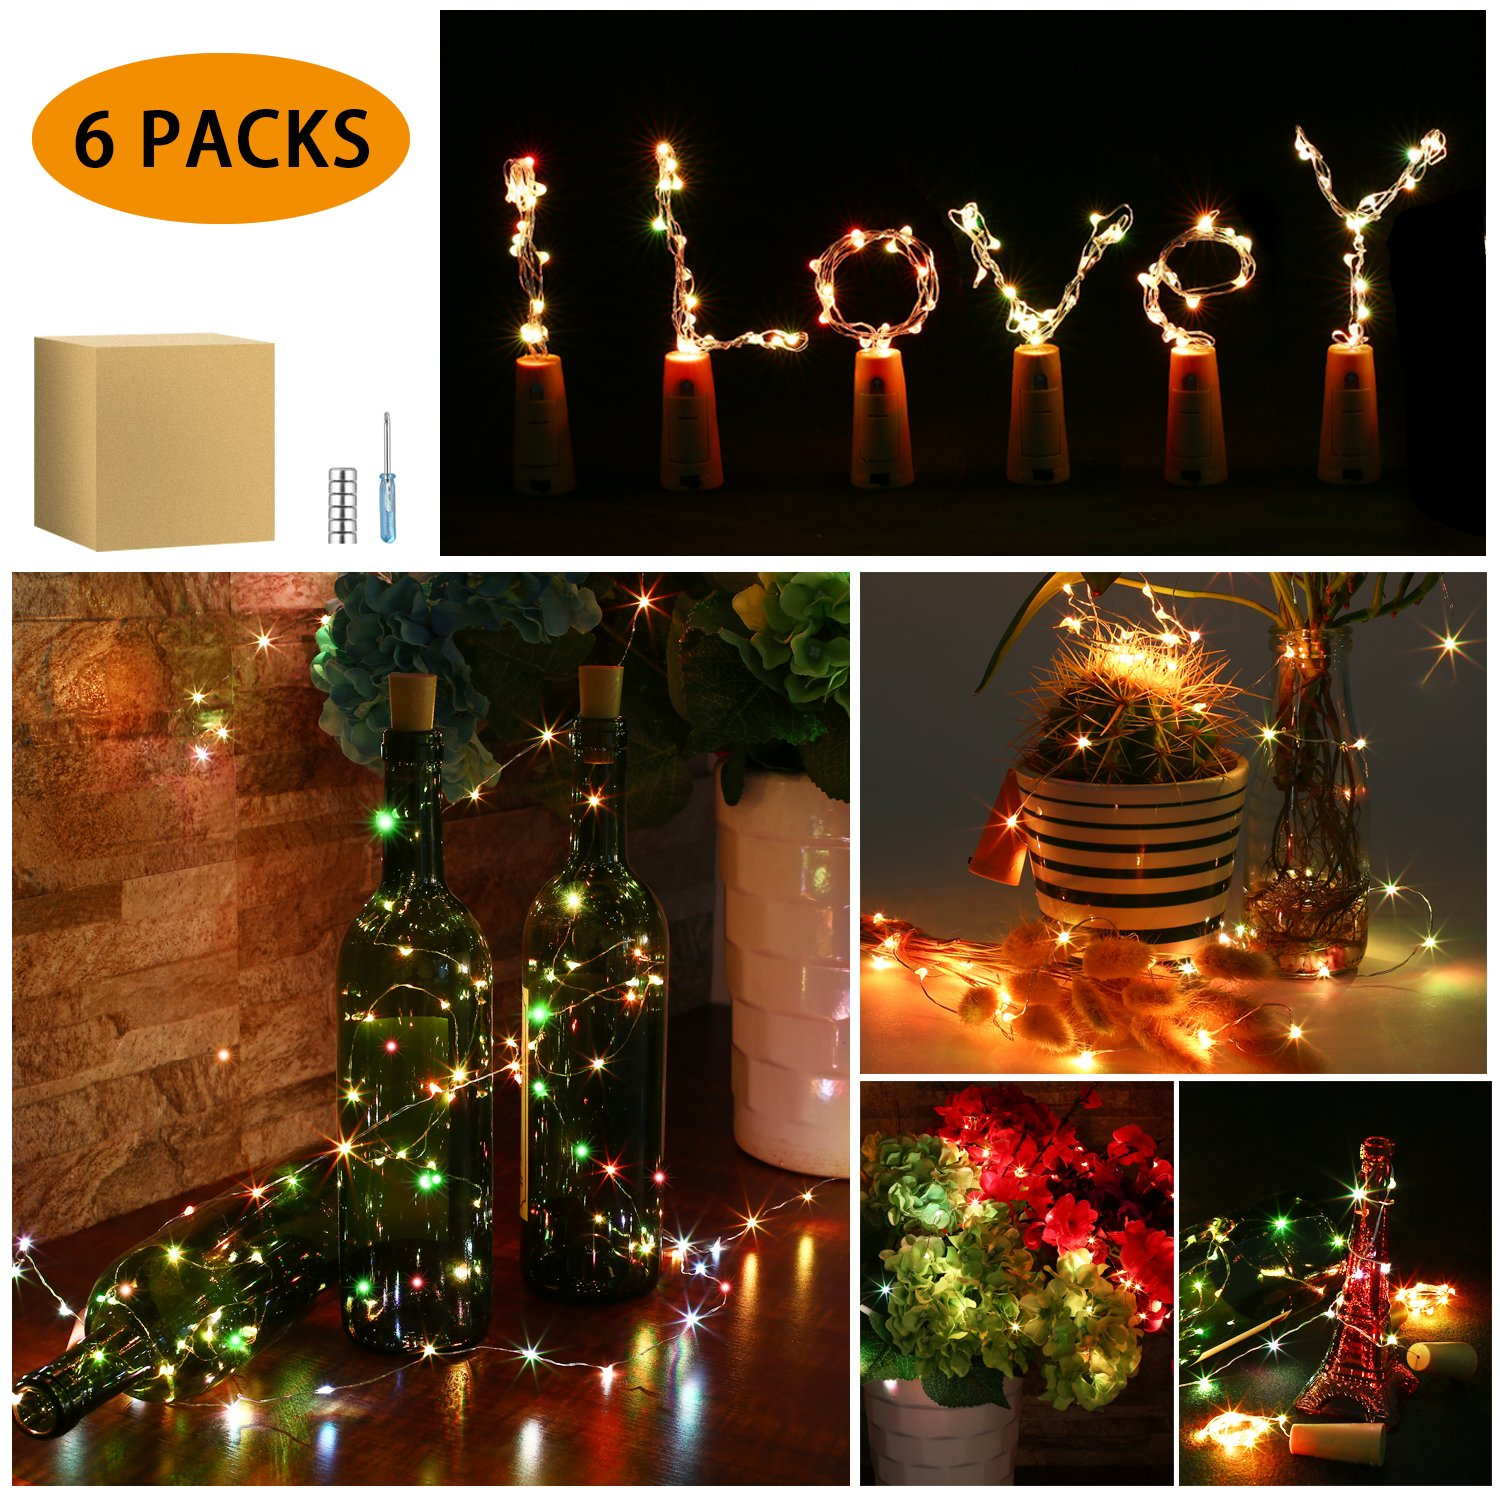 Wine Bottle Lights with Cork, ICOCO 6 Pack 15 LED Copper Wire Lights Fairy DIY Decorative String Lights for Party, Decor, Wedding, Christmas(Multi-colors Flashing)